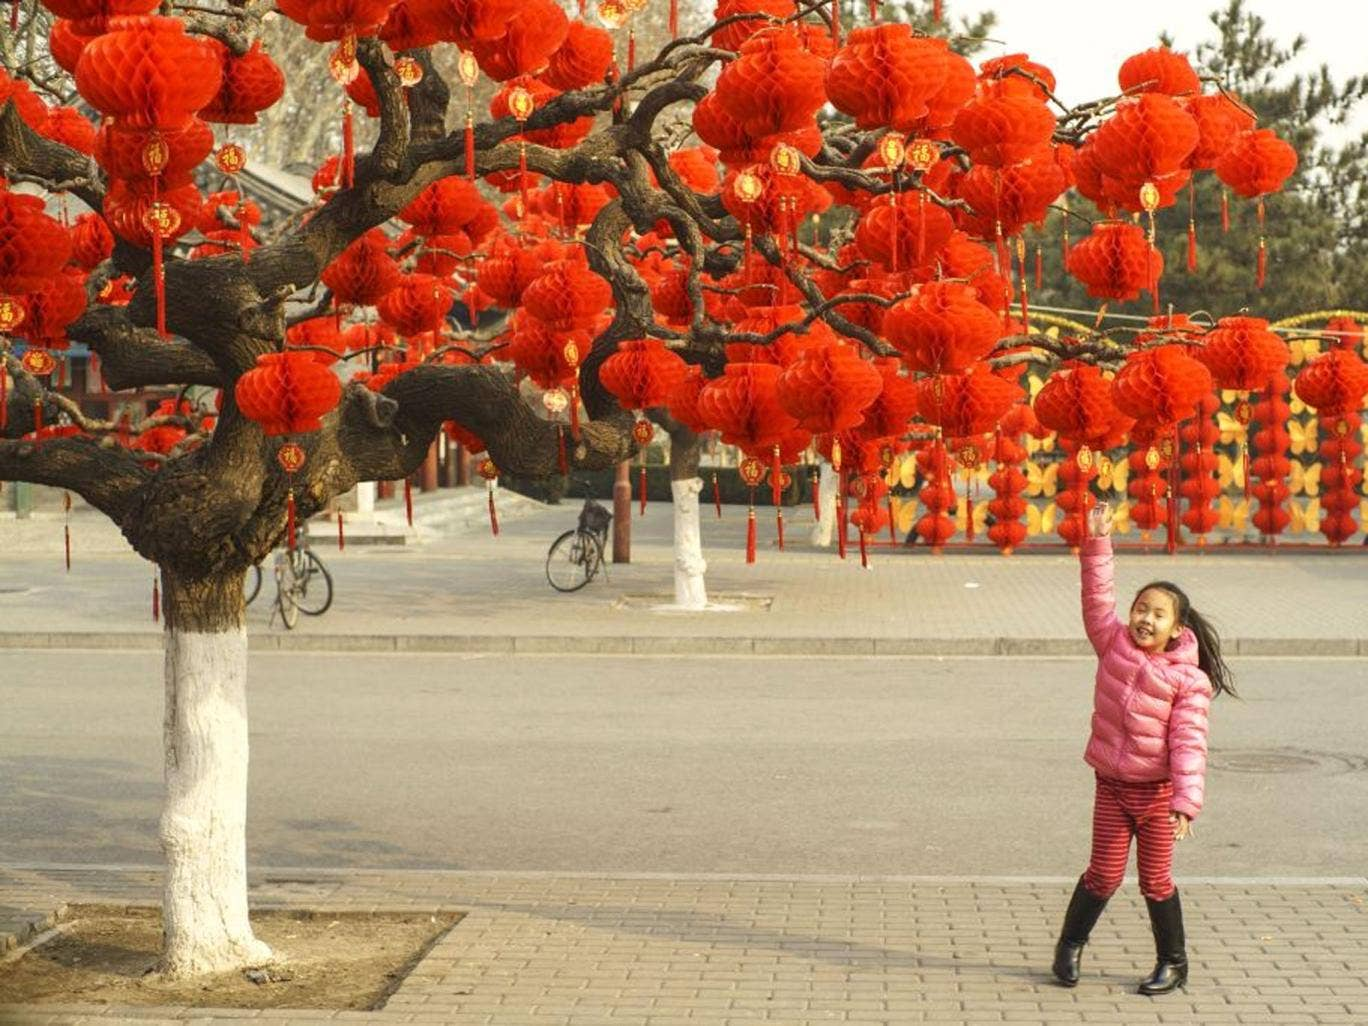 A girl explores red lanterns decorations prepared for Chinese Spring Festival or Lunar New Year in Beijing